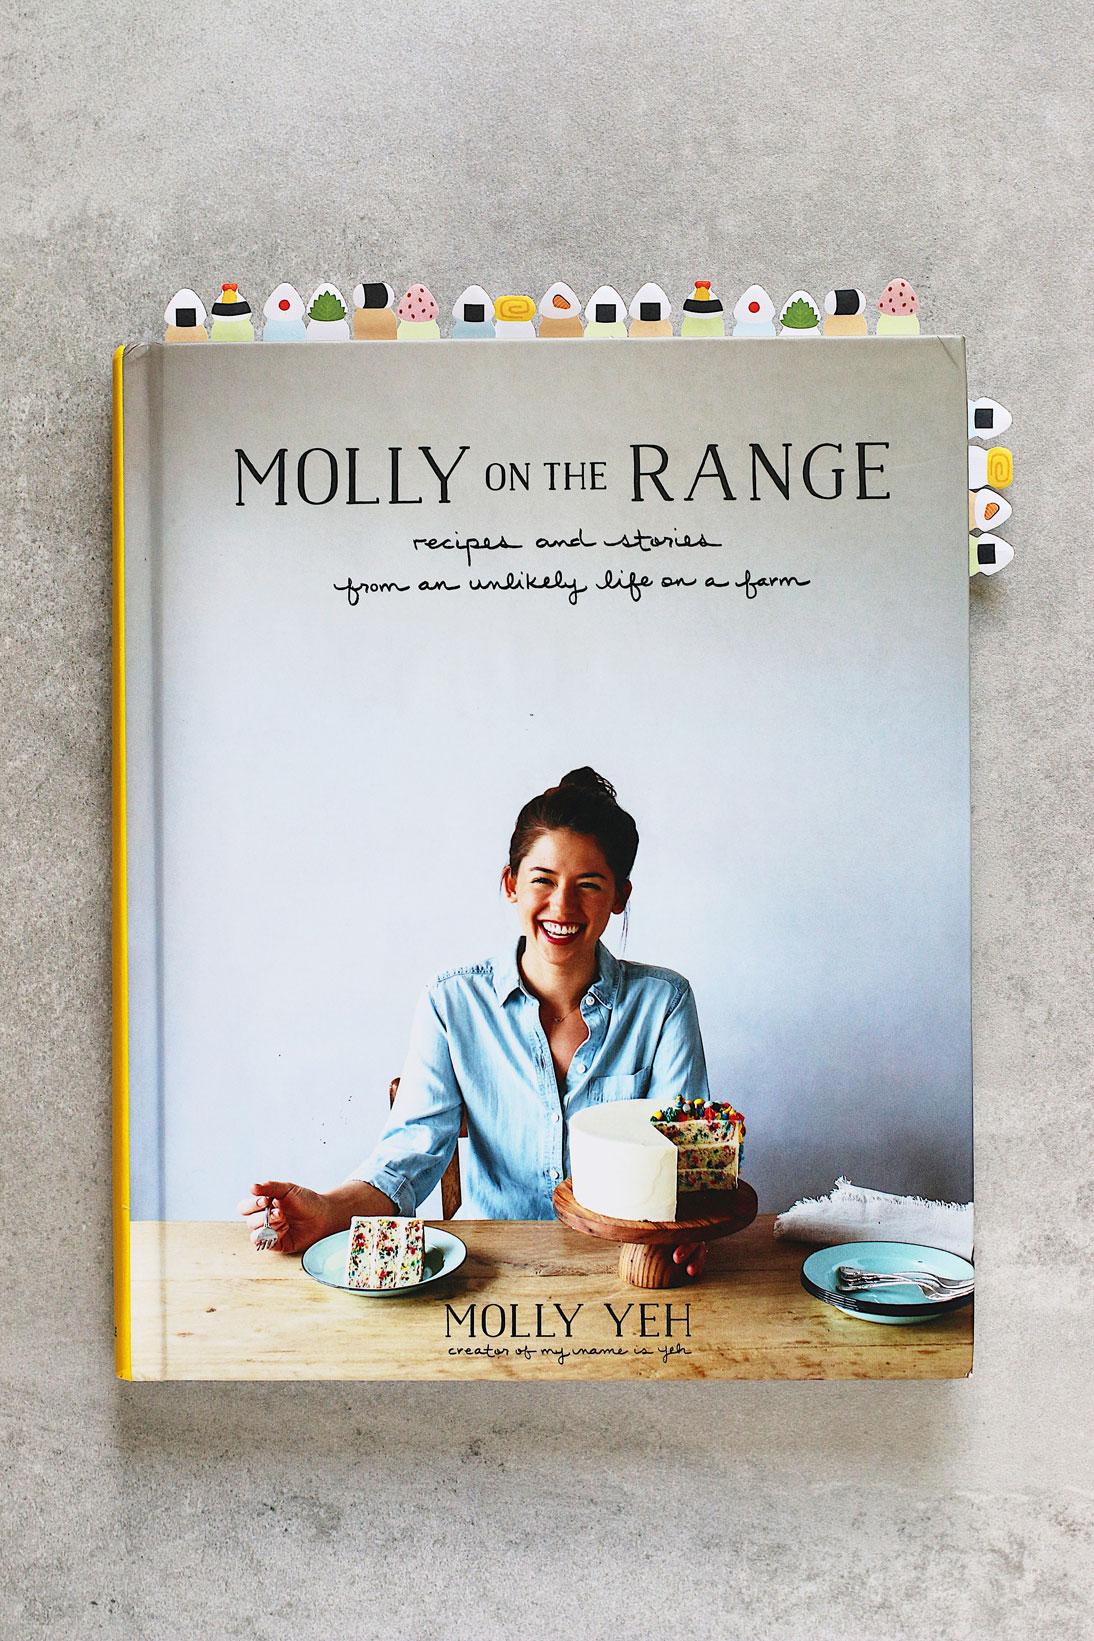 Her-Cookbook-Club-Molly-On-the-Range-book-review